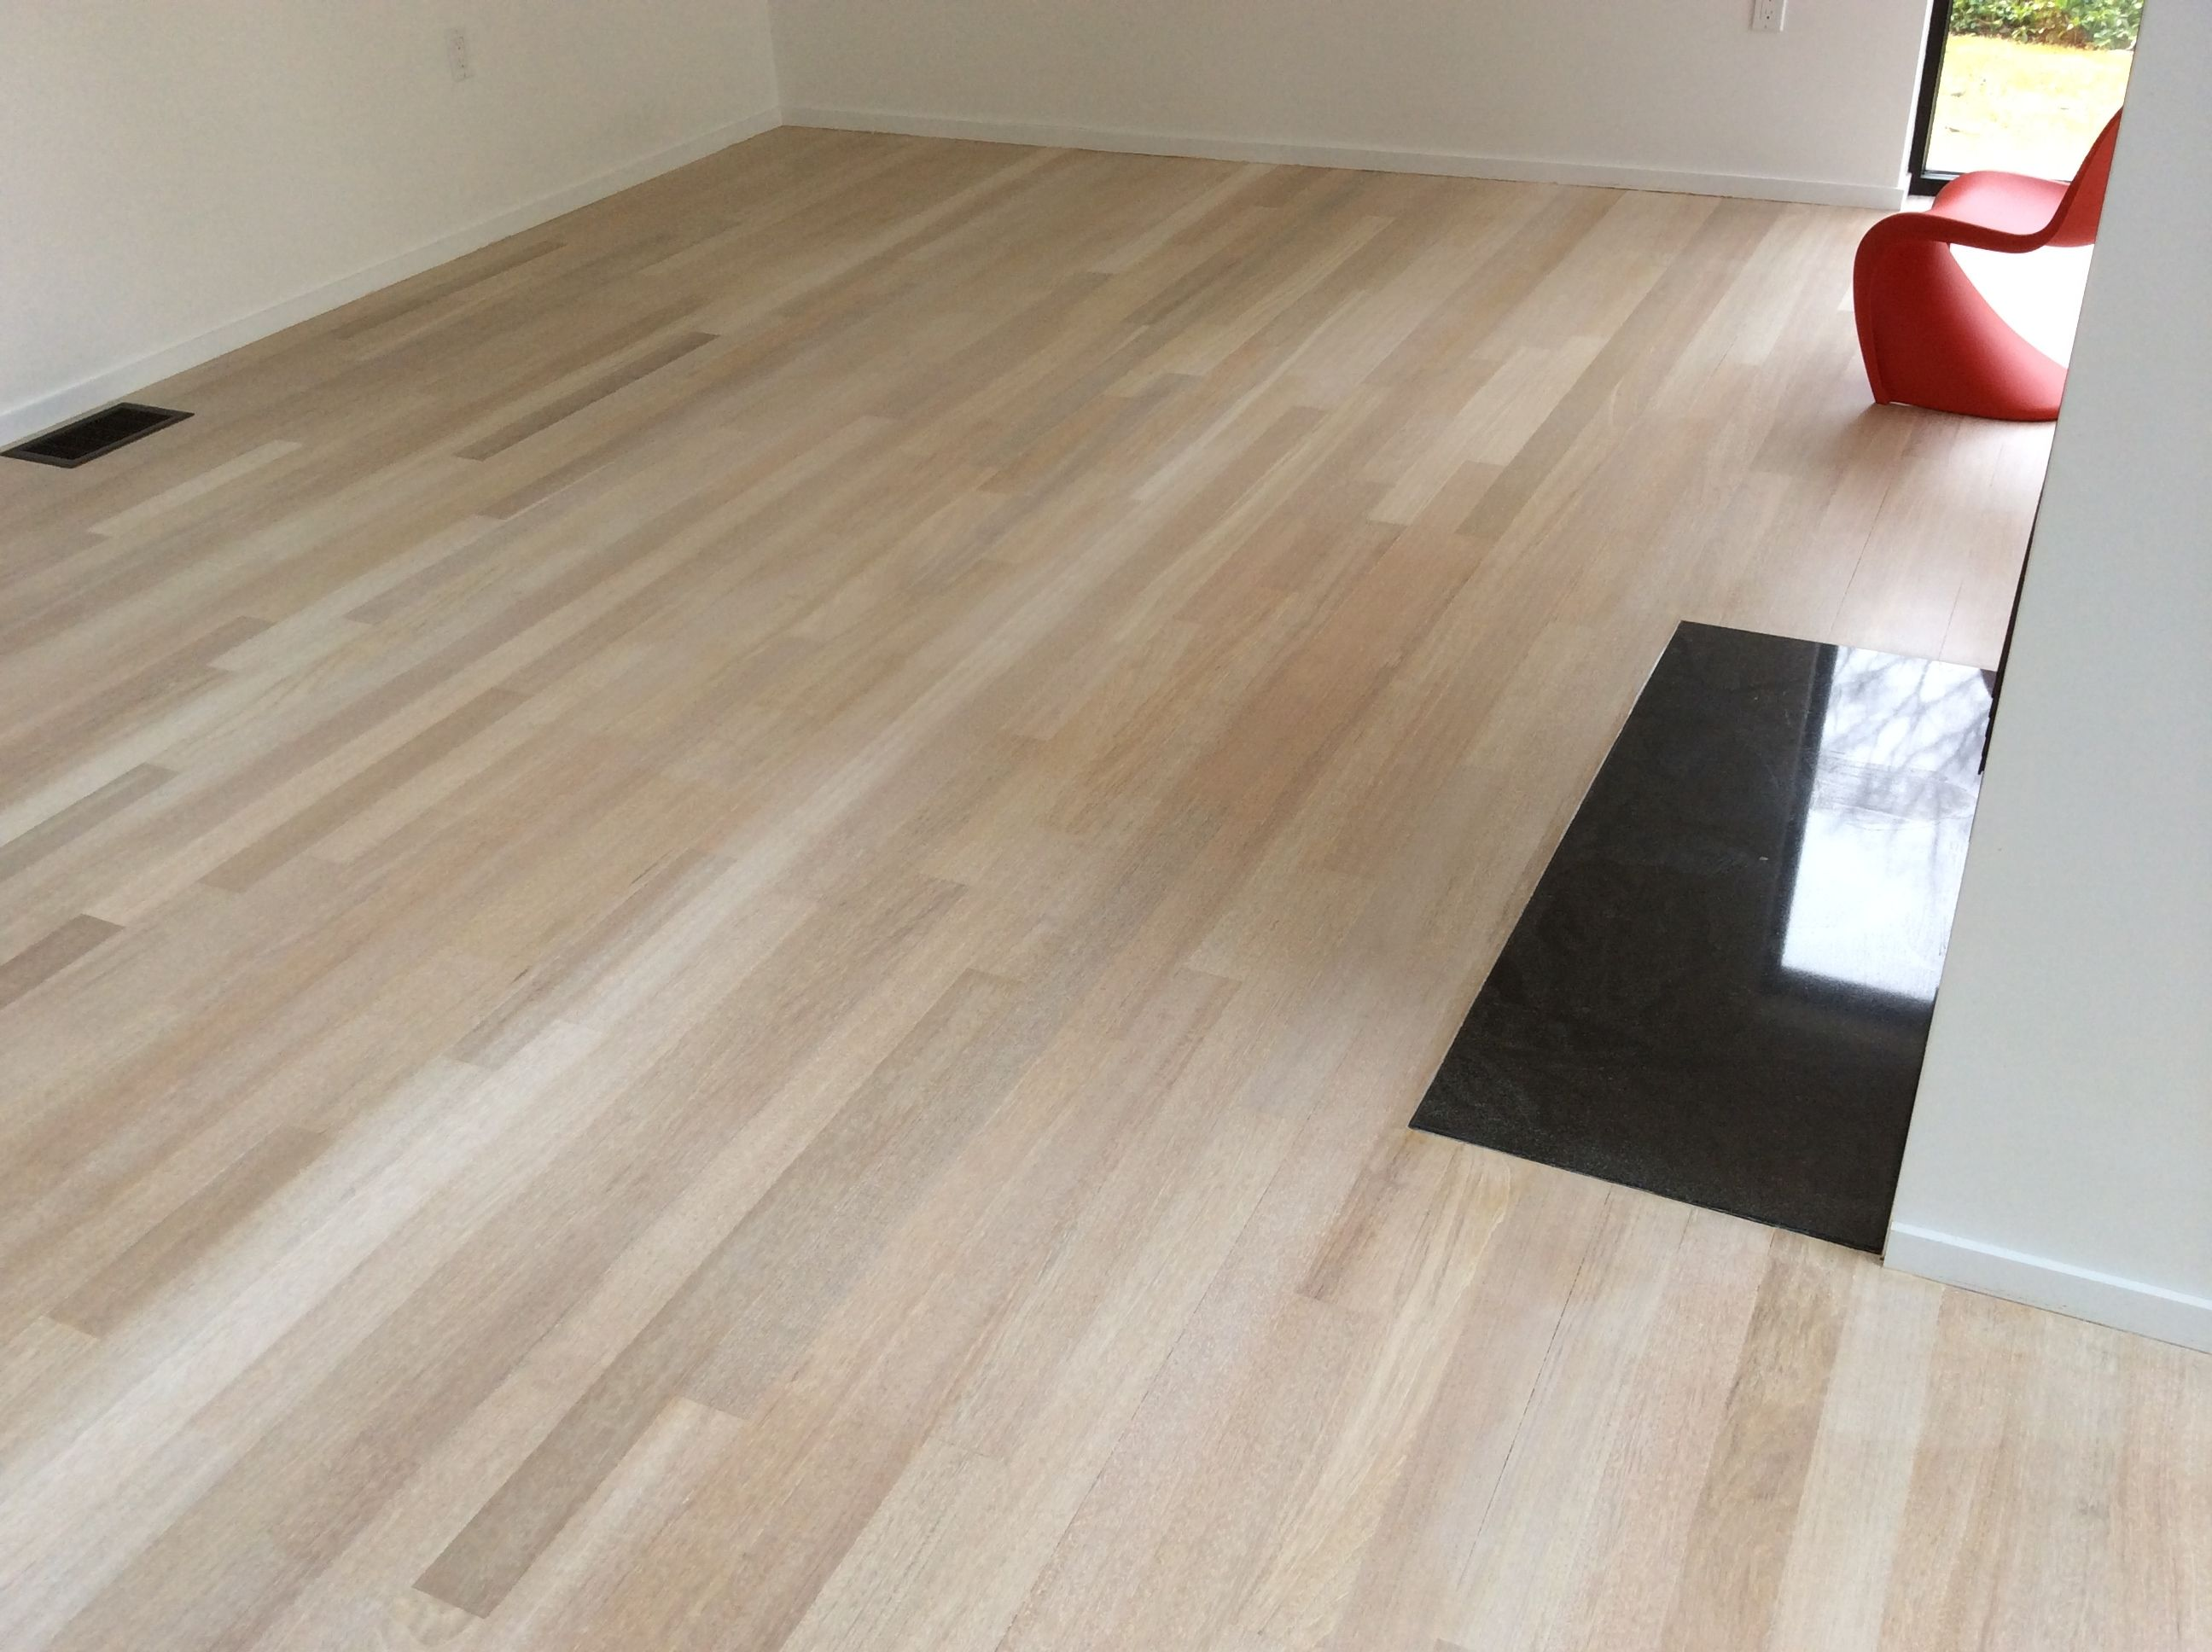 Pickled Wood Floor Finishes With